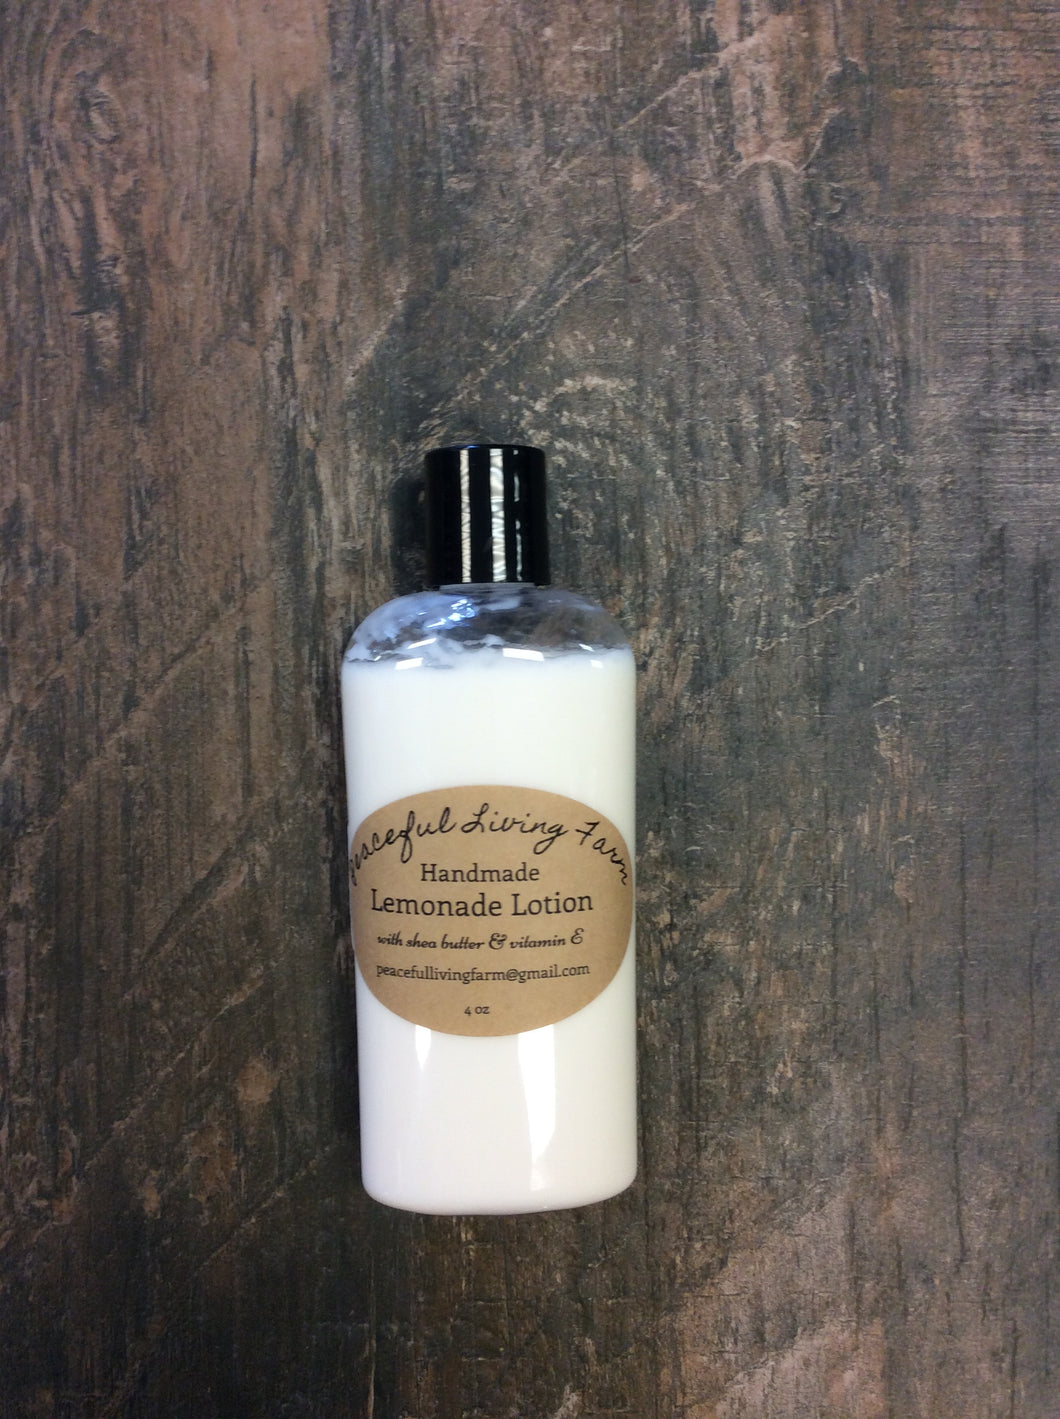 Handmade Lotion